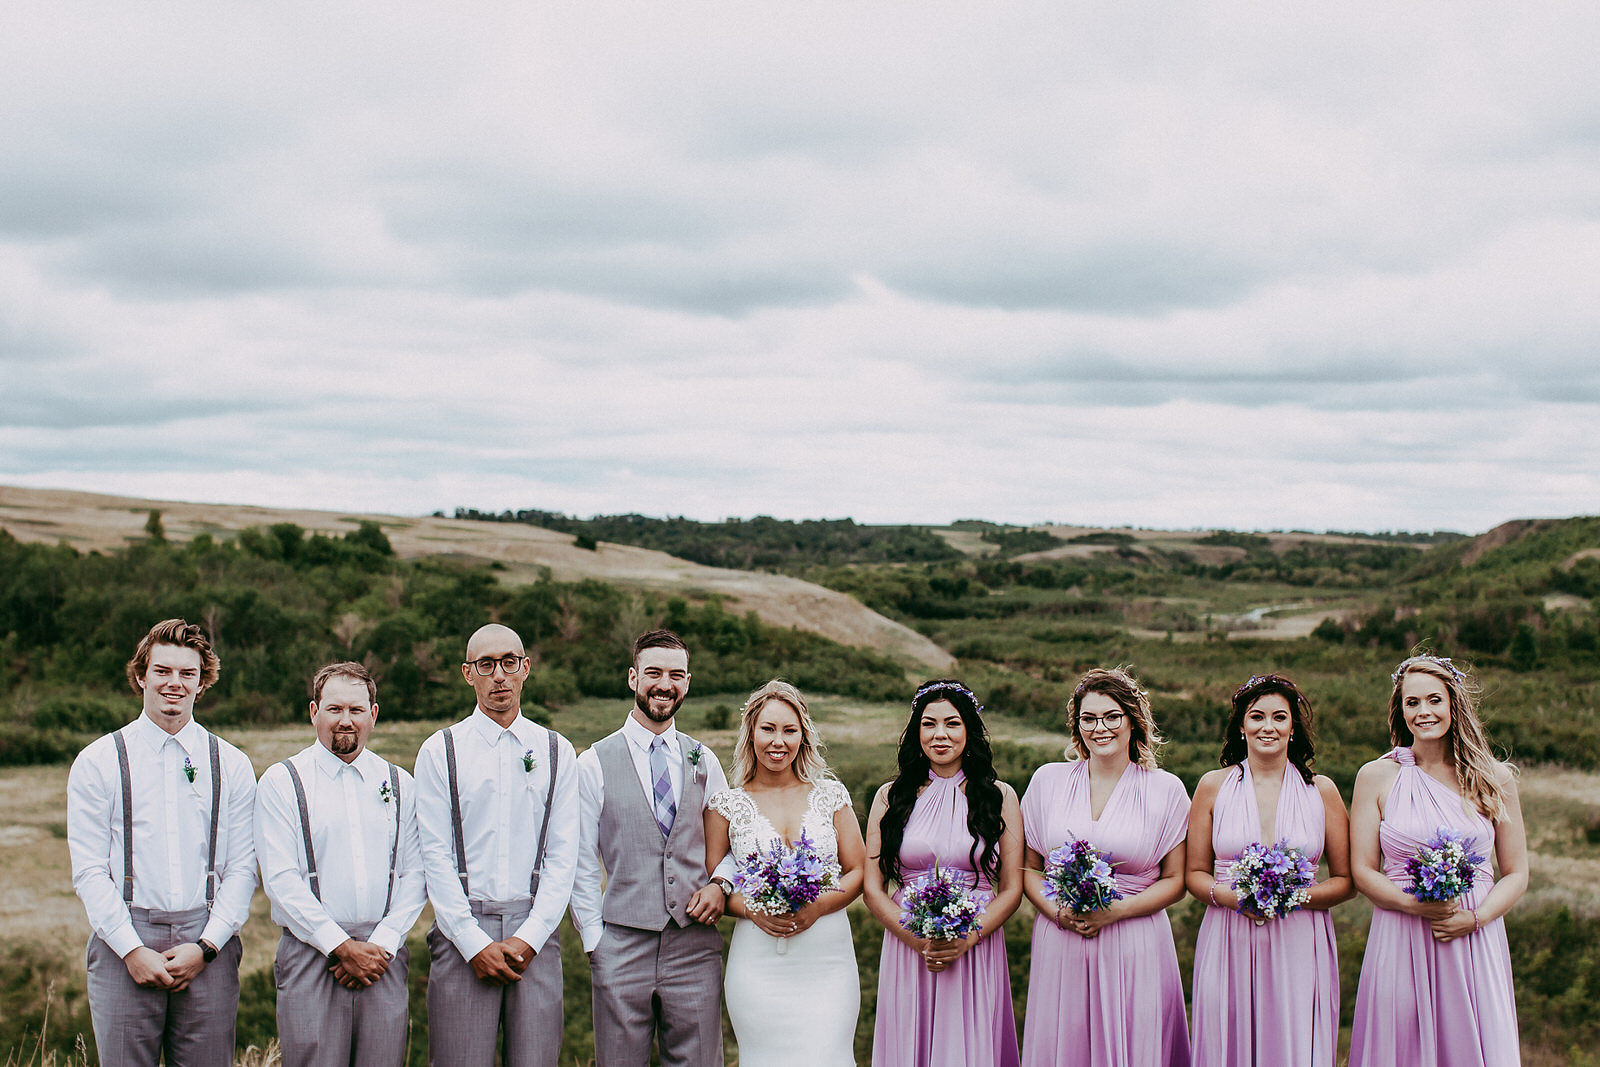 Wascana Trails wedding ceremony